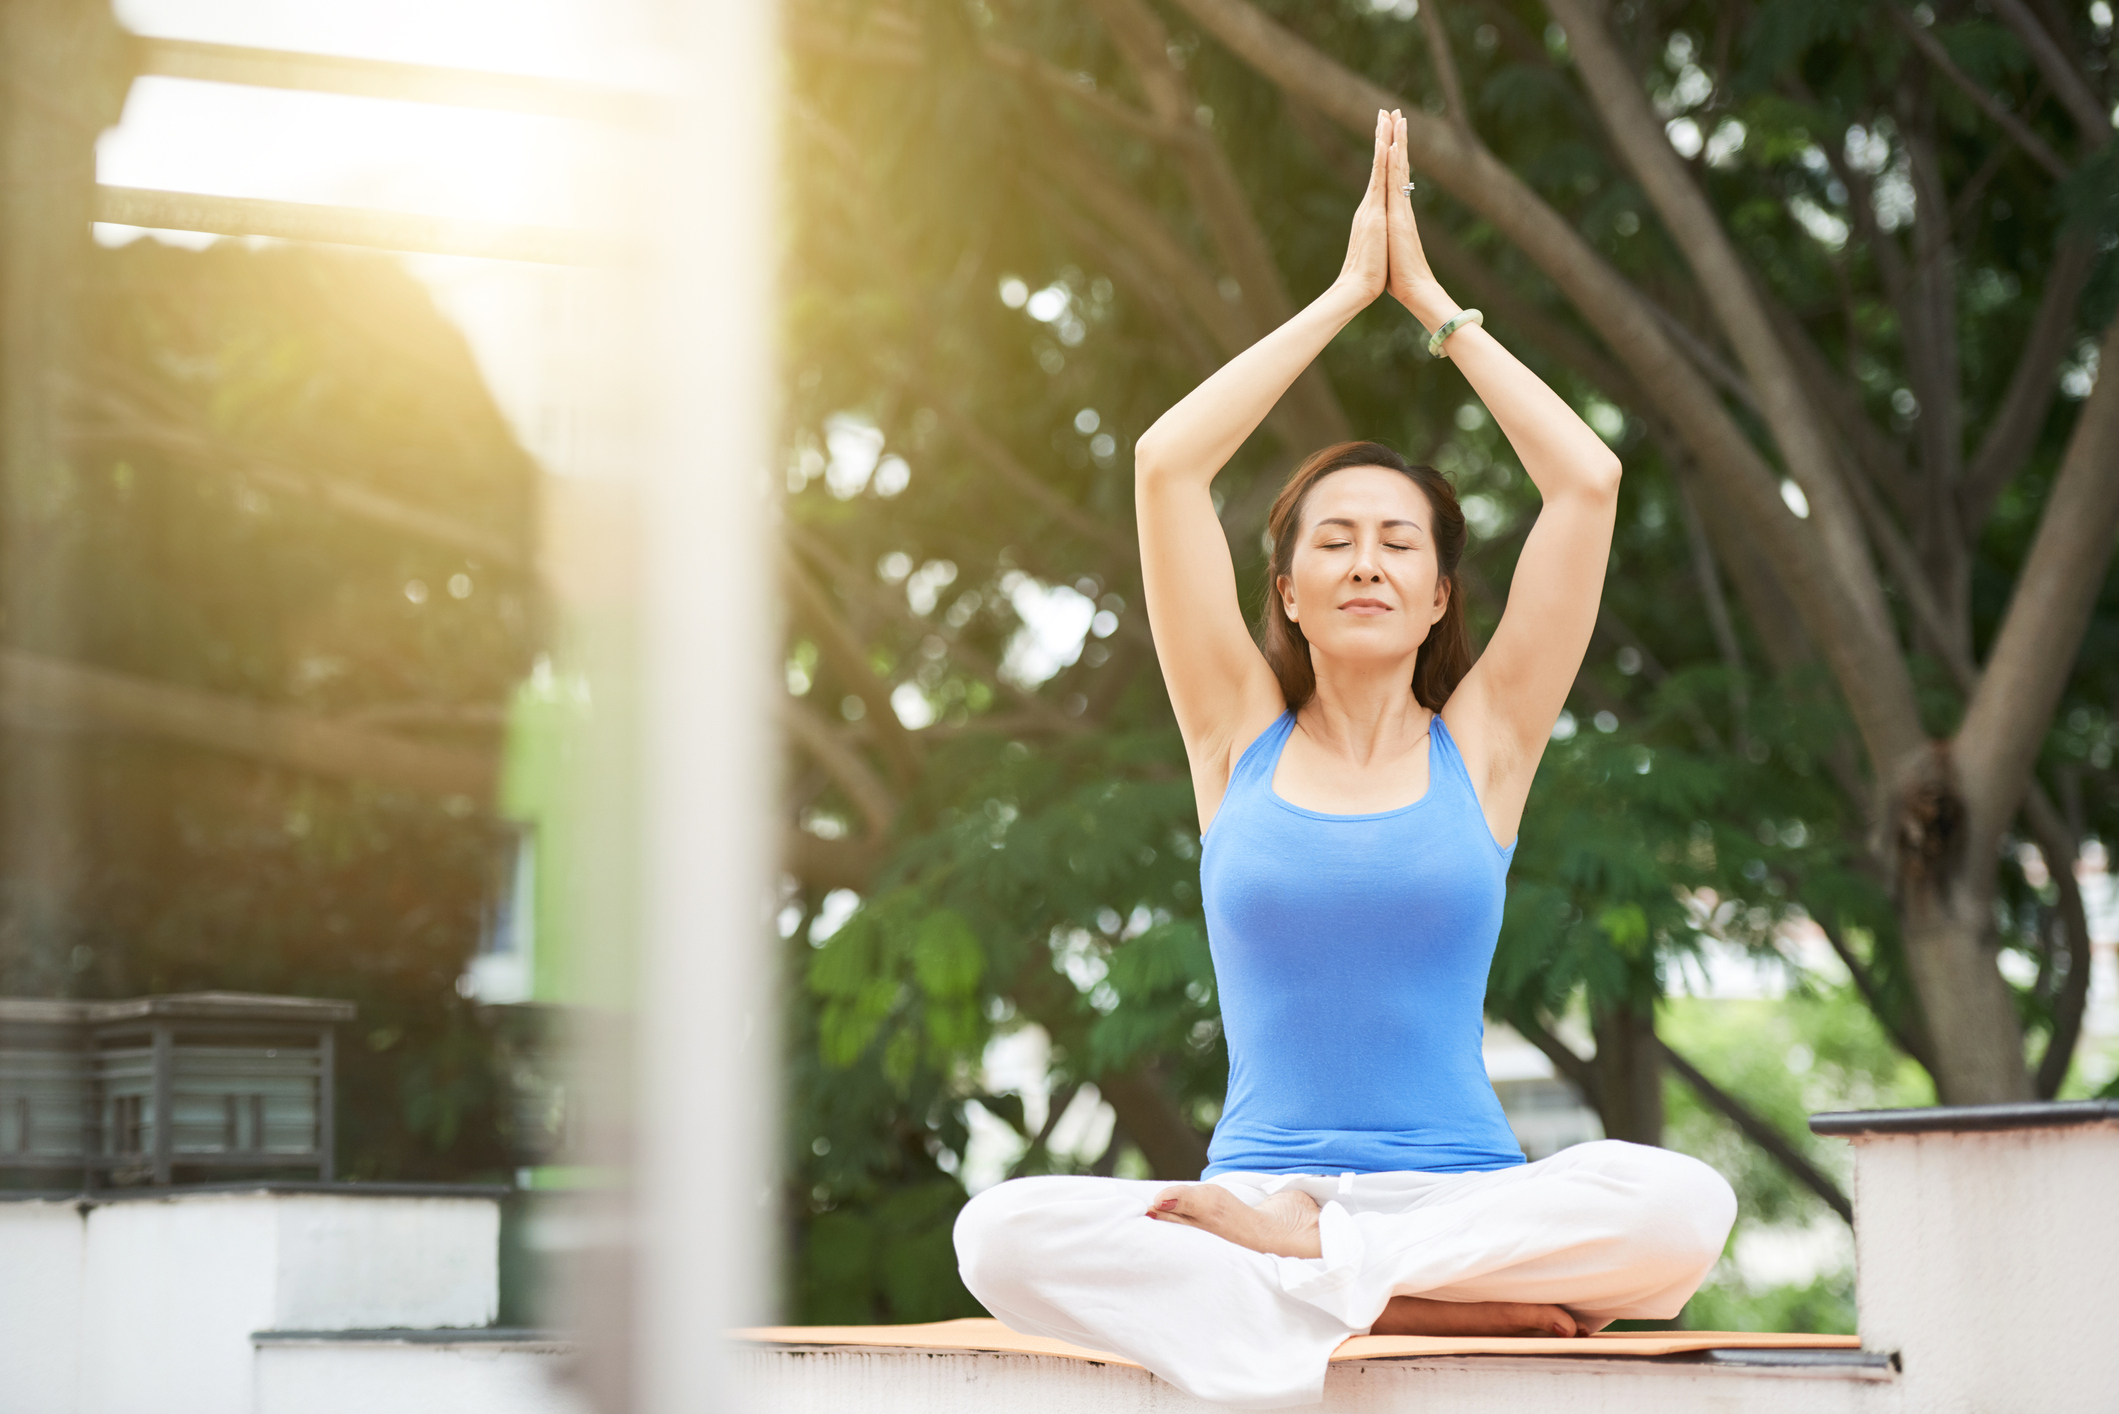 3 Restful Practices to Support Immunity